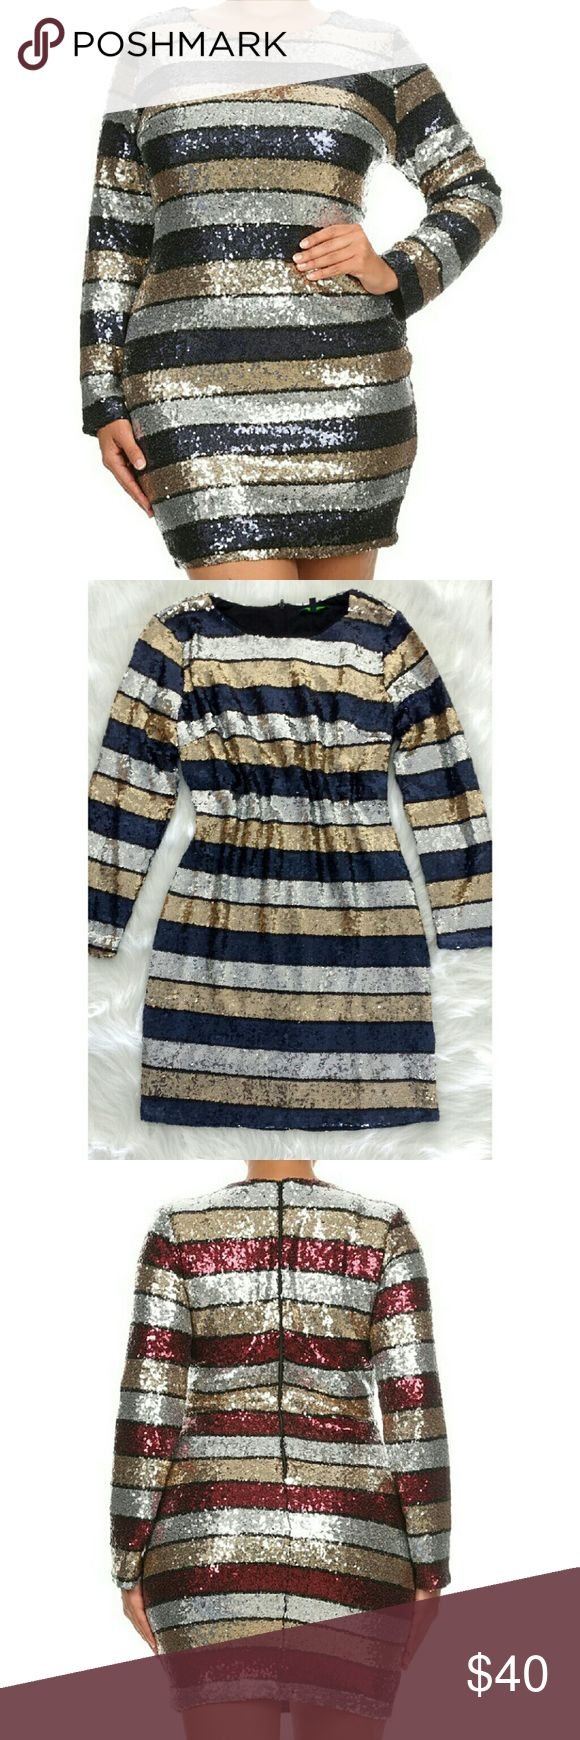 Plus Size Sequin Dress Brand new without tag. Polyester/Spandex  Plus size sequin long sleeves. Center back zipper very good material. Multiple colors:navy blue/silver/gold/some black Dresses